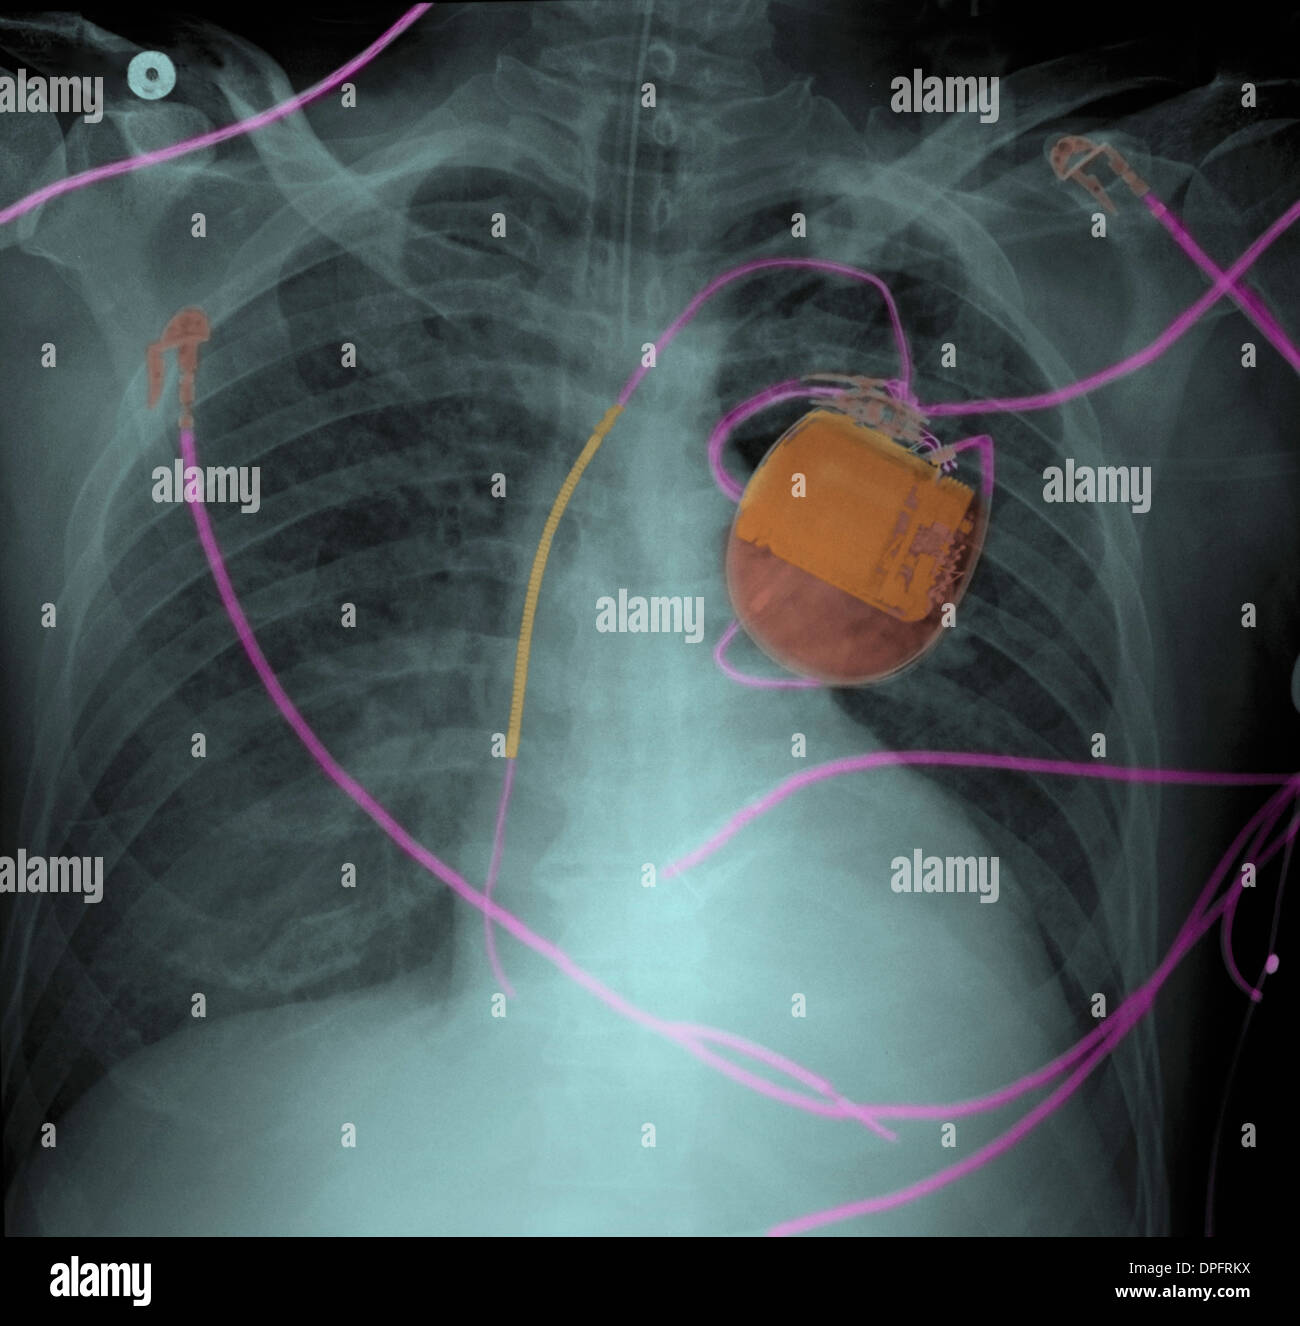 Chest x-ray of pacemaker and pulmonary edema - Stock Image